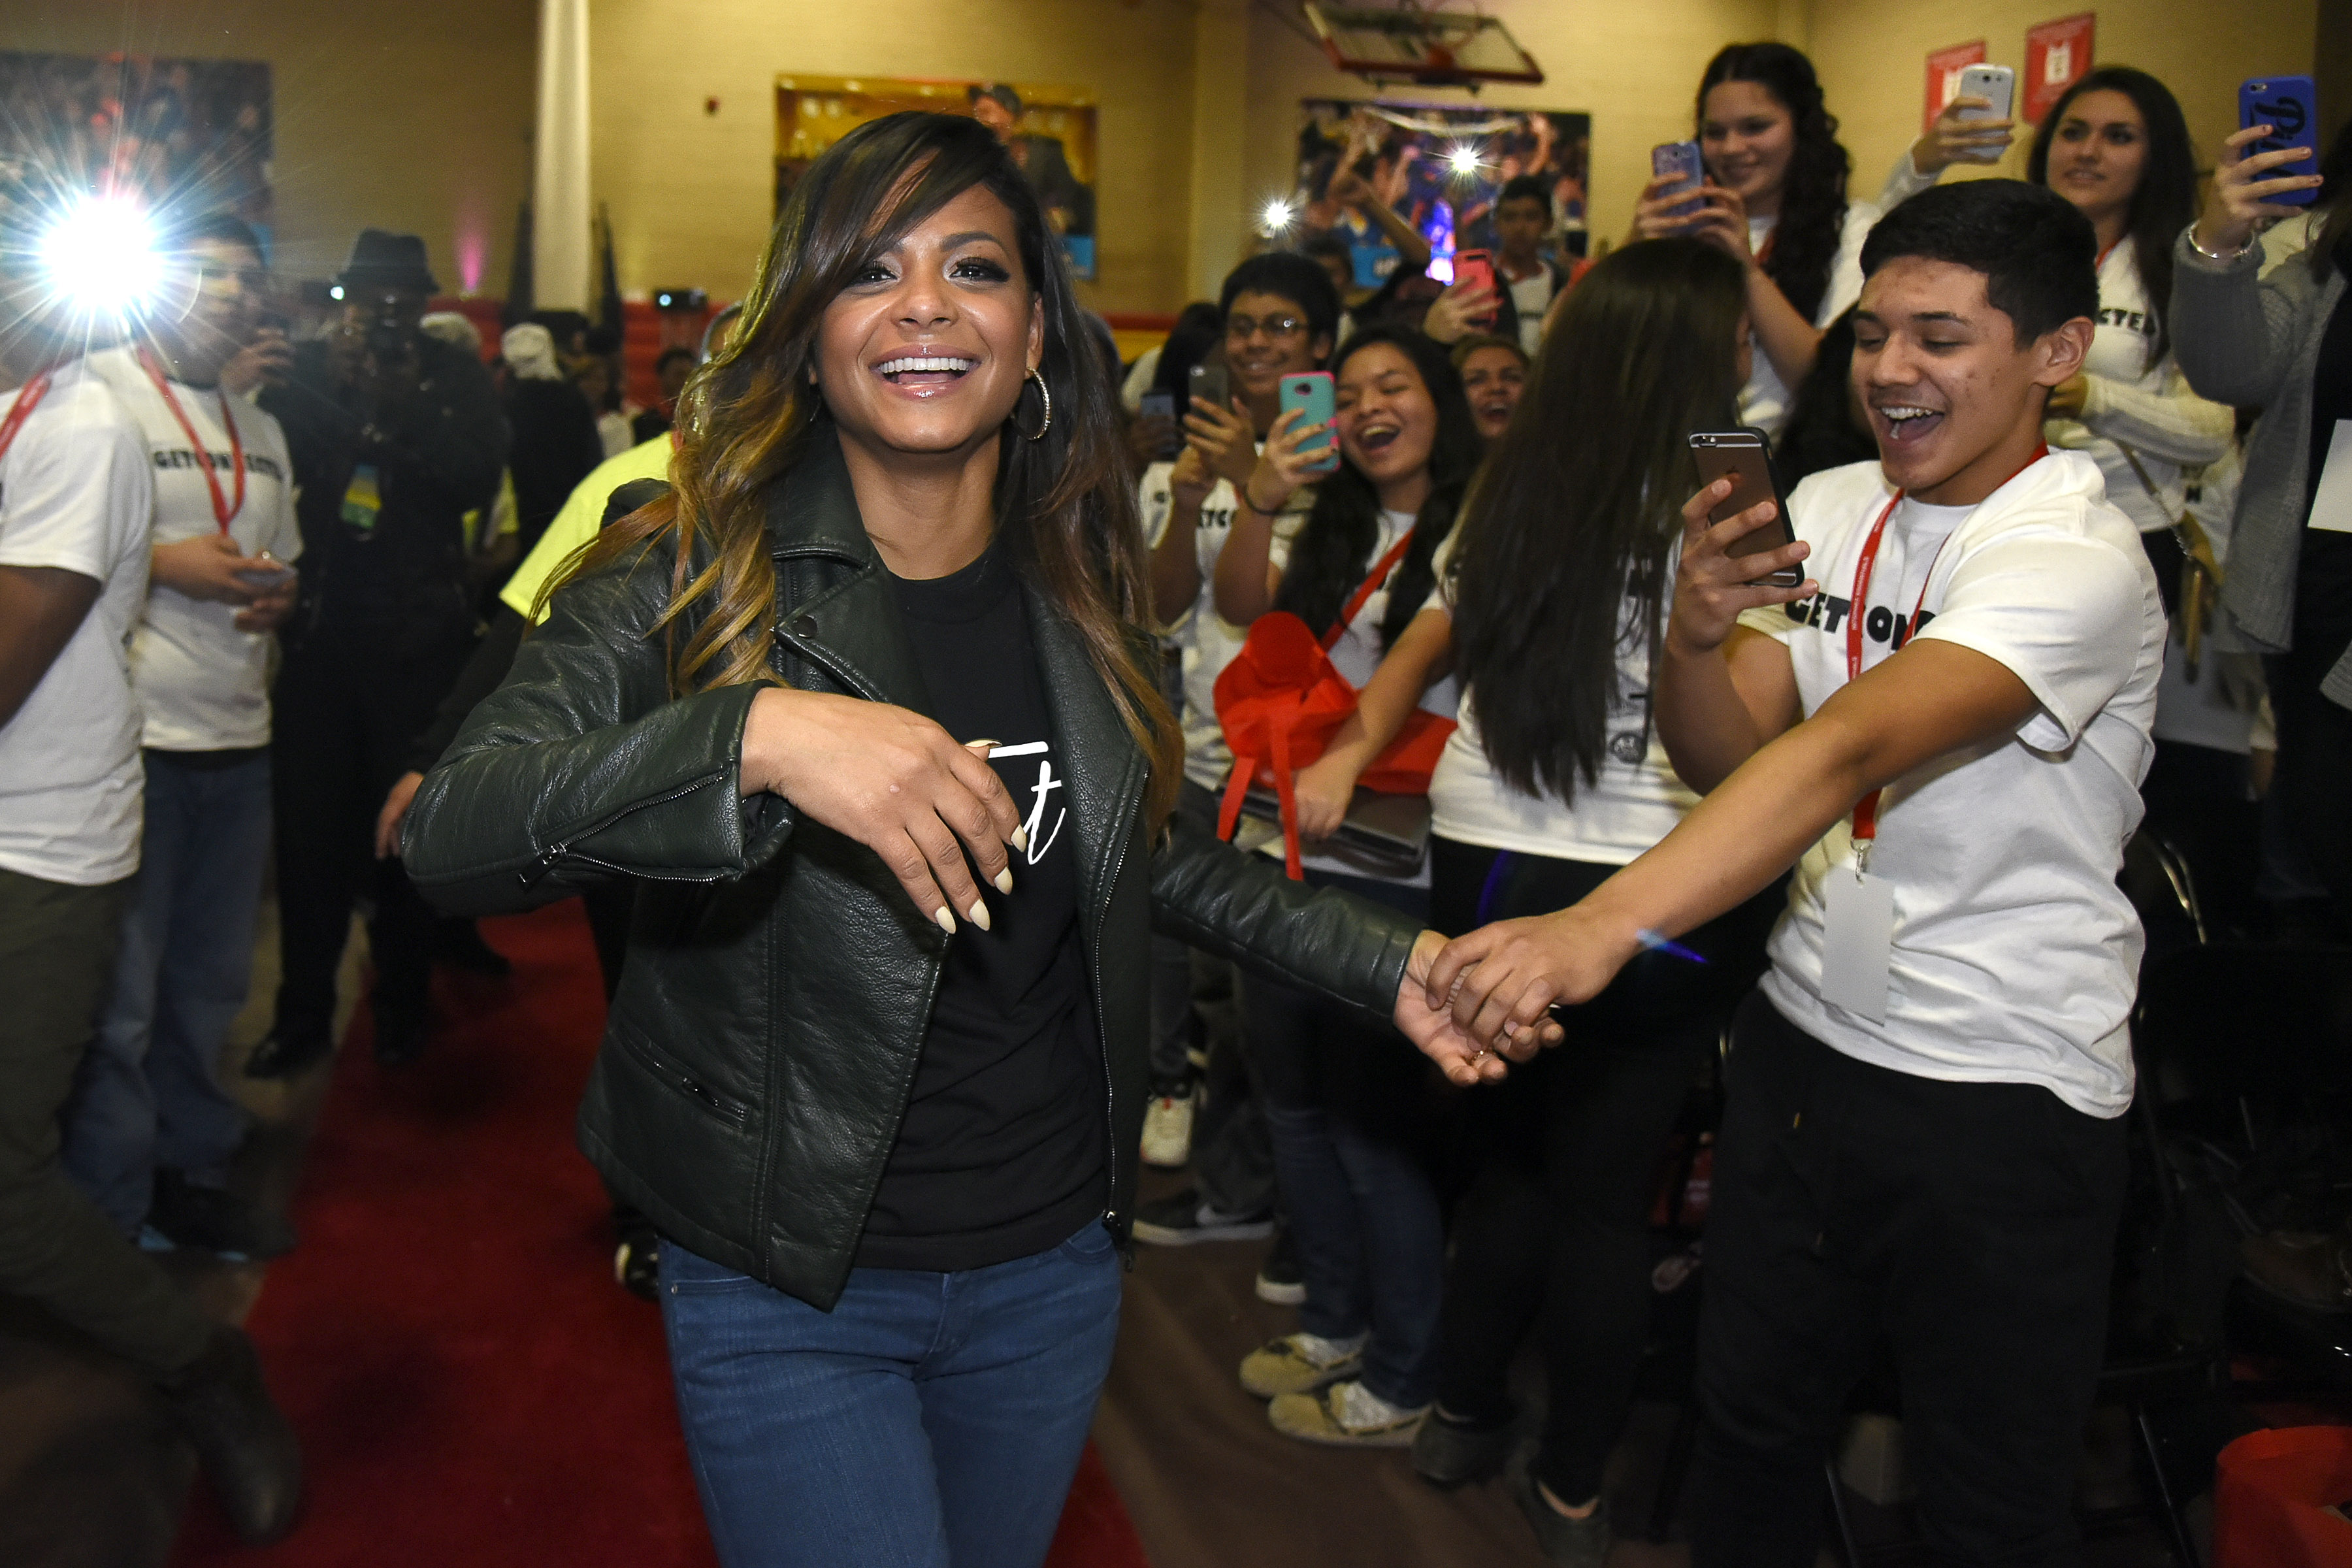 Christina Milian makes her way to the stage at the Get Schooled, Get Connected Celebration. Christina has a new show that aired on E! this past Sunday.